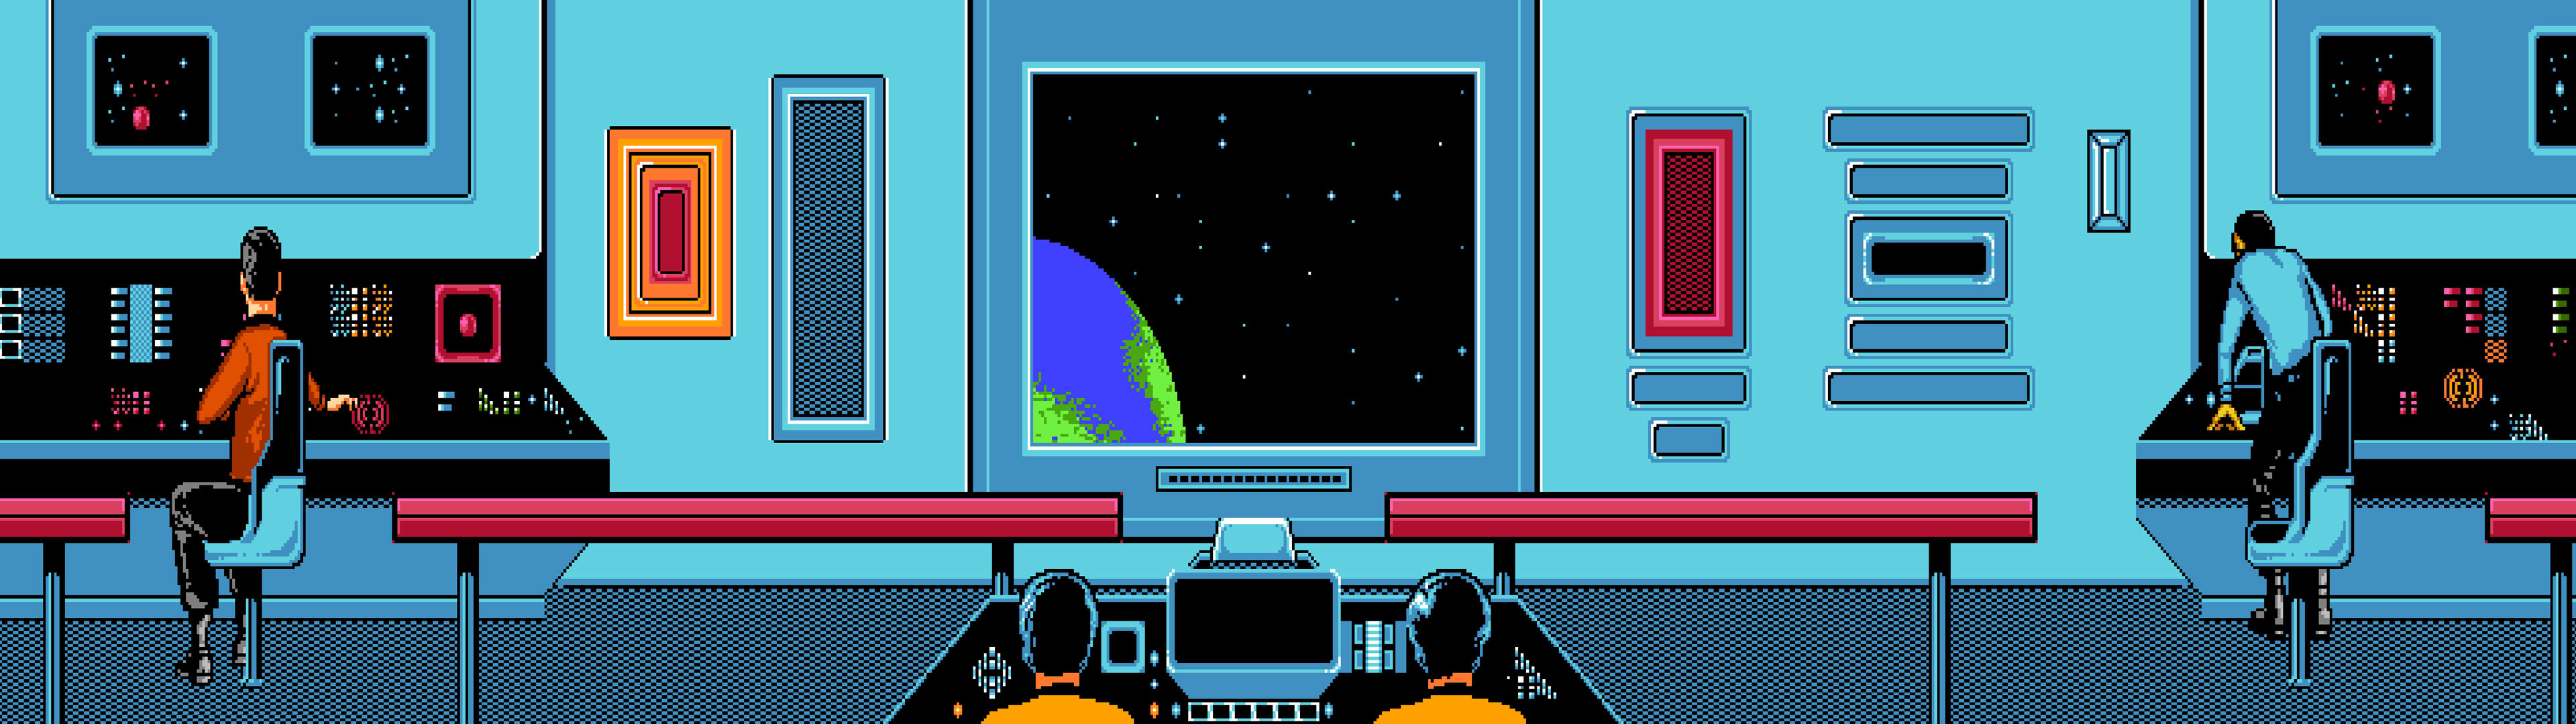 3840x1080 Multi Monitor Dual Screen video games retro classic sci fi science  spaceship spacecrafts wallpaper |  | 32641 | WallpaperUP